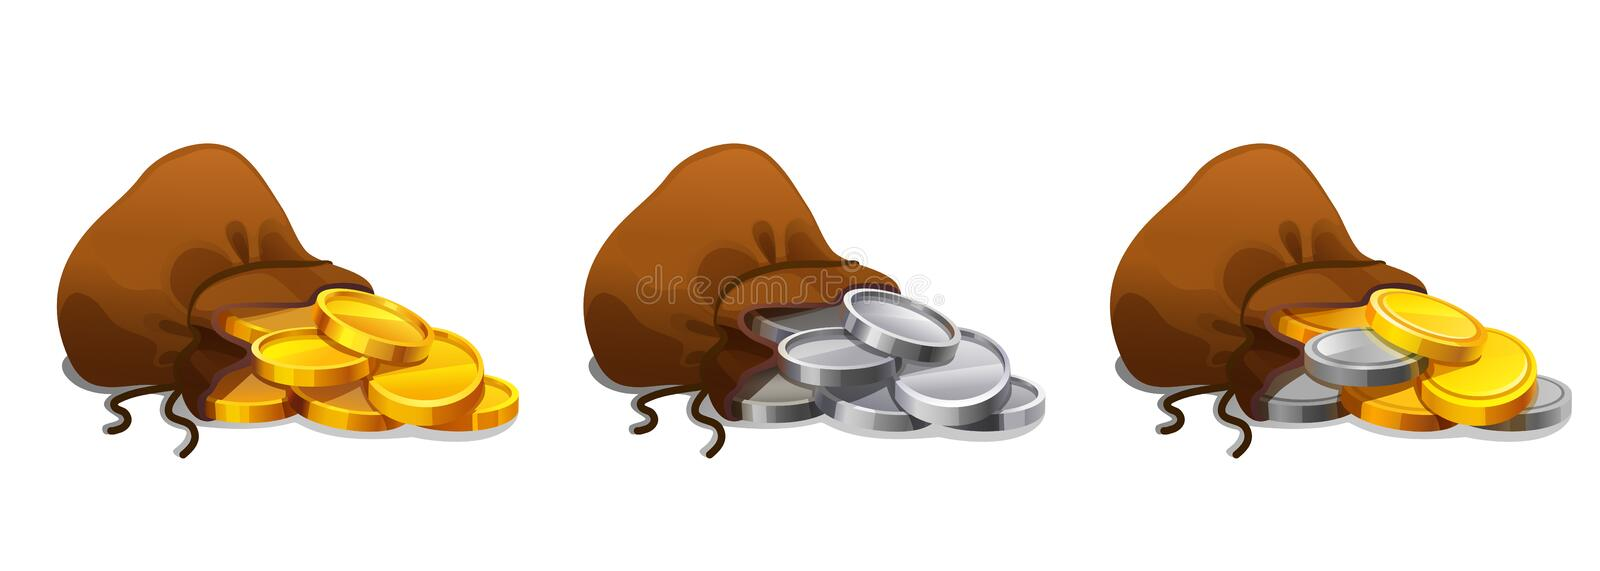 Old textile sack purse set with gold and silver coins. Old bag with gold and silver coins. Money bag set on white background. royalty free illustration